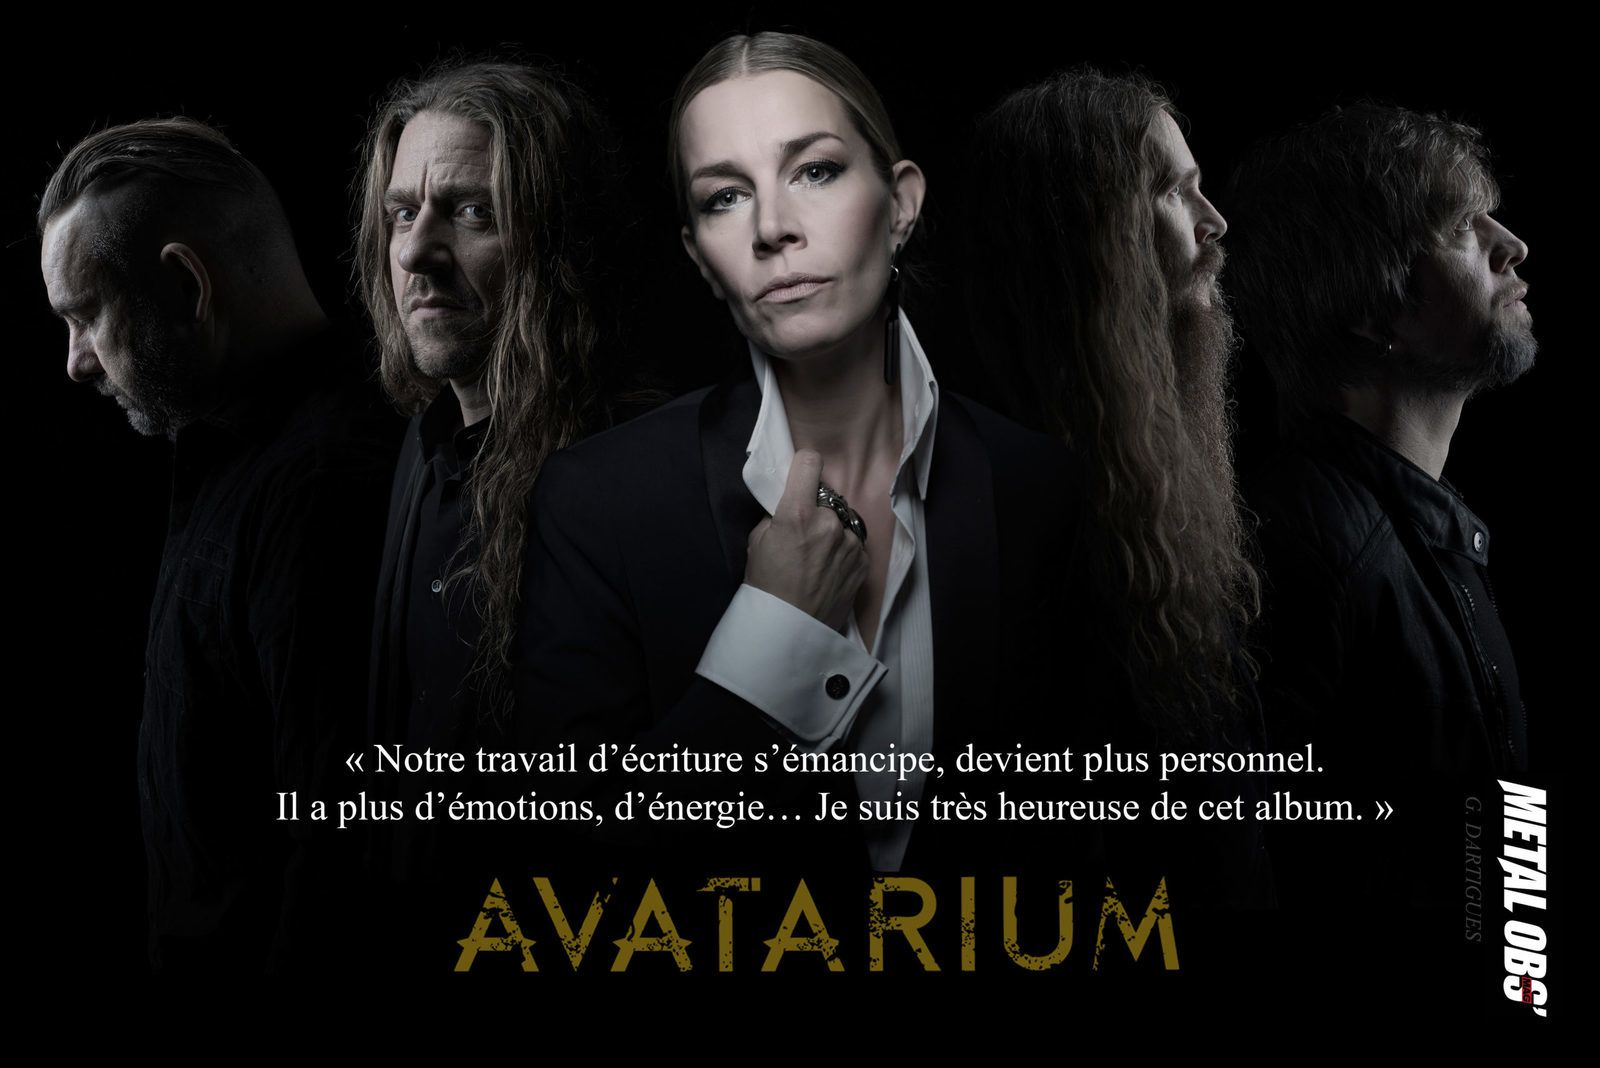 CHRONIQUE DE L'ALBUM D'AVATARIUM THE FIRE I LONG FOR : UN SOMBRE GOSPEL !